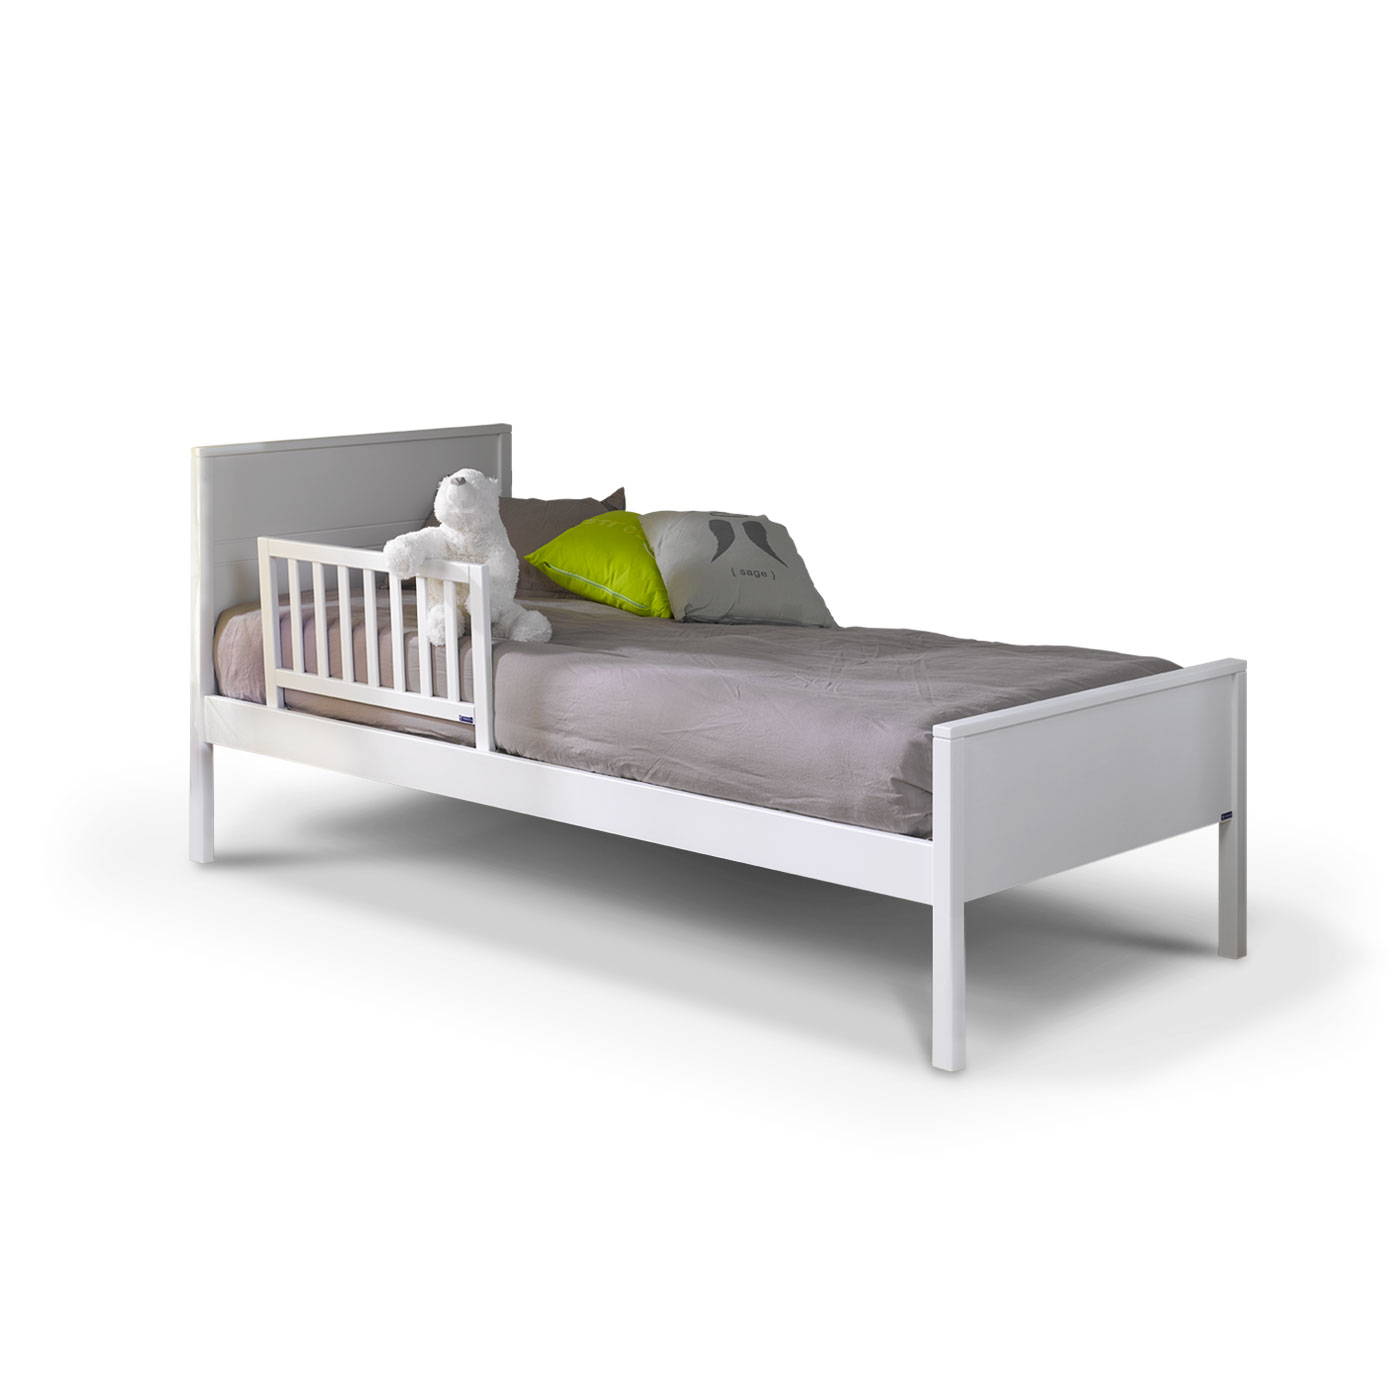 Barri re de lit enfant 70 cm blanc idkid 39 s - Barriere protection lit enfant ...